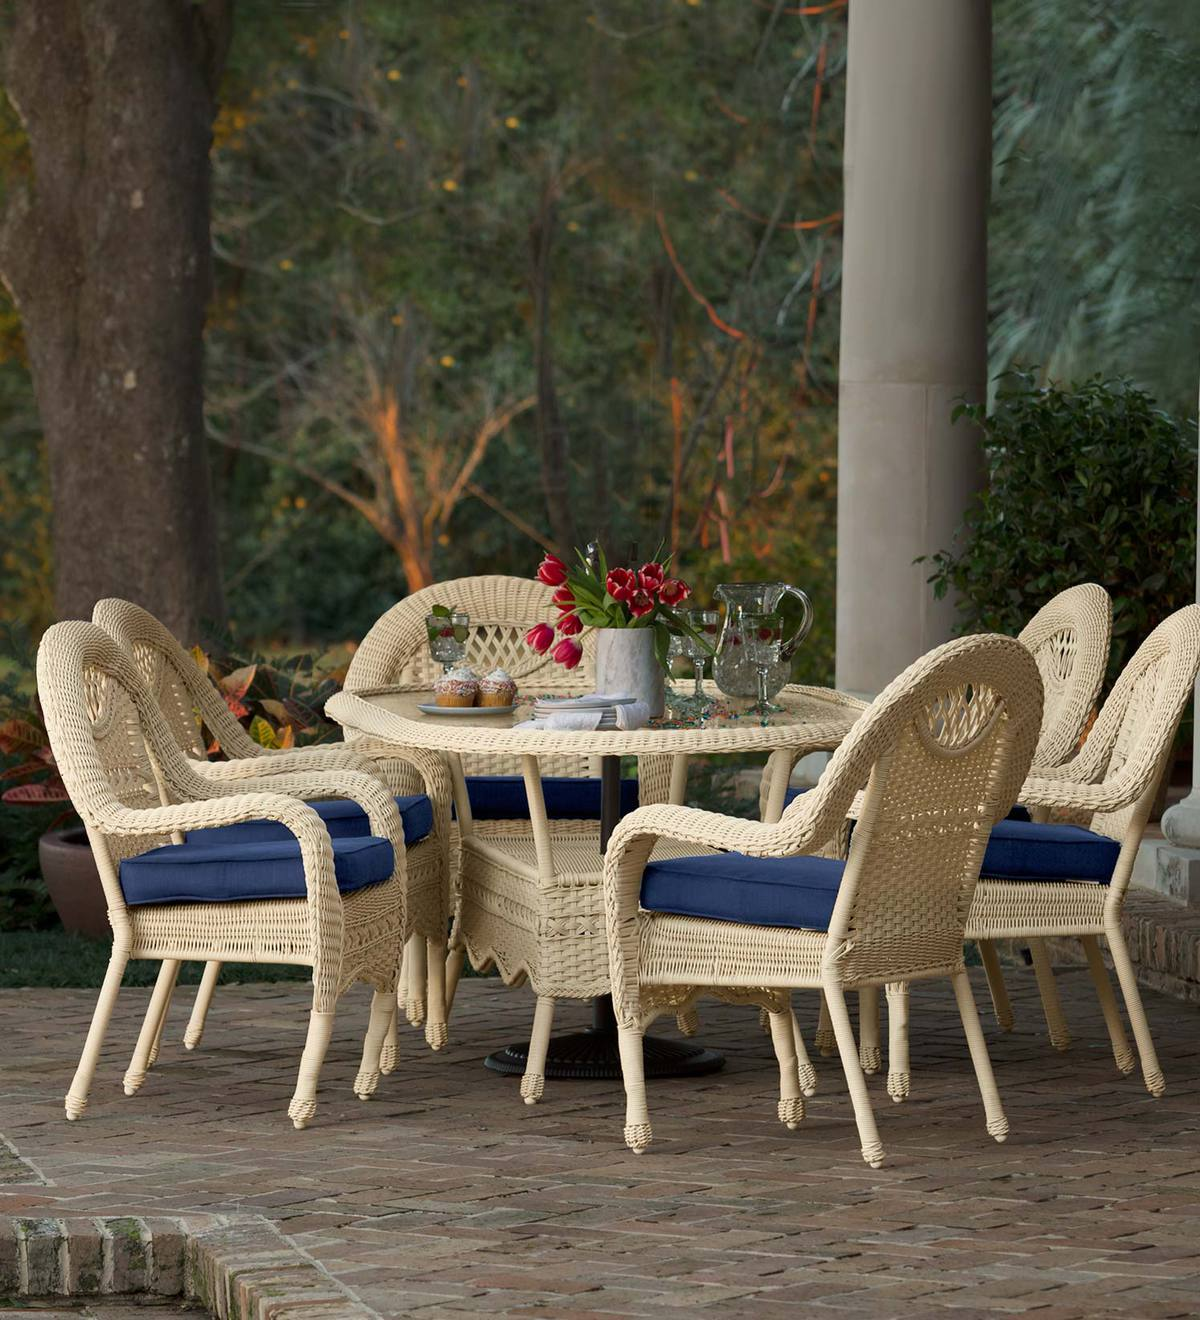 Prospect Hill Oval Dining Table and 6 Chairs Set - Cloud White